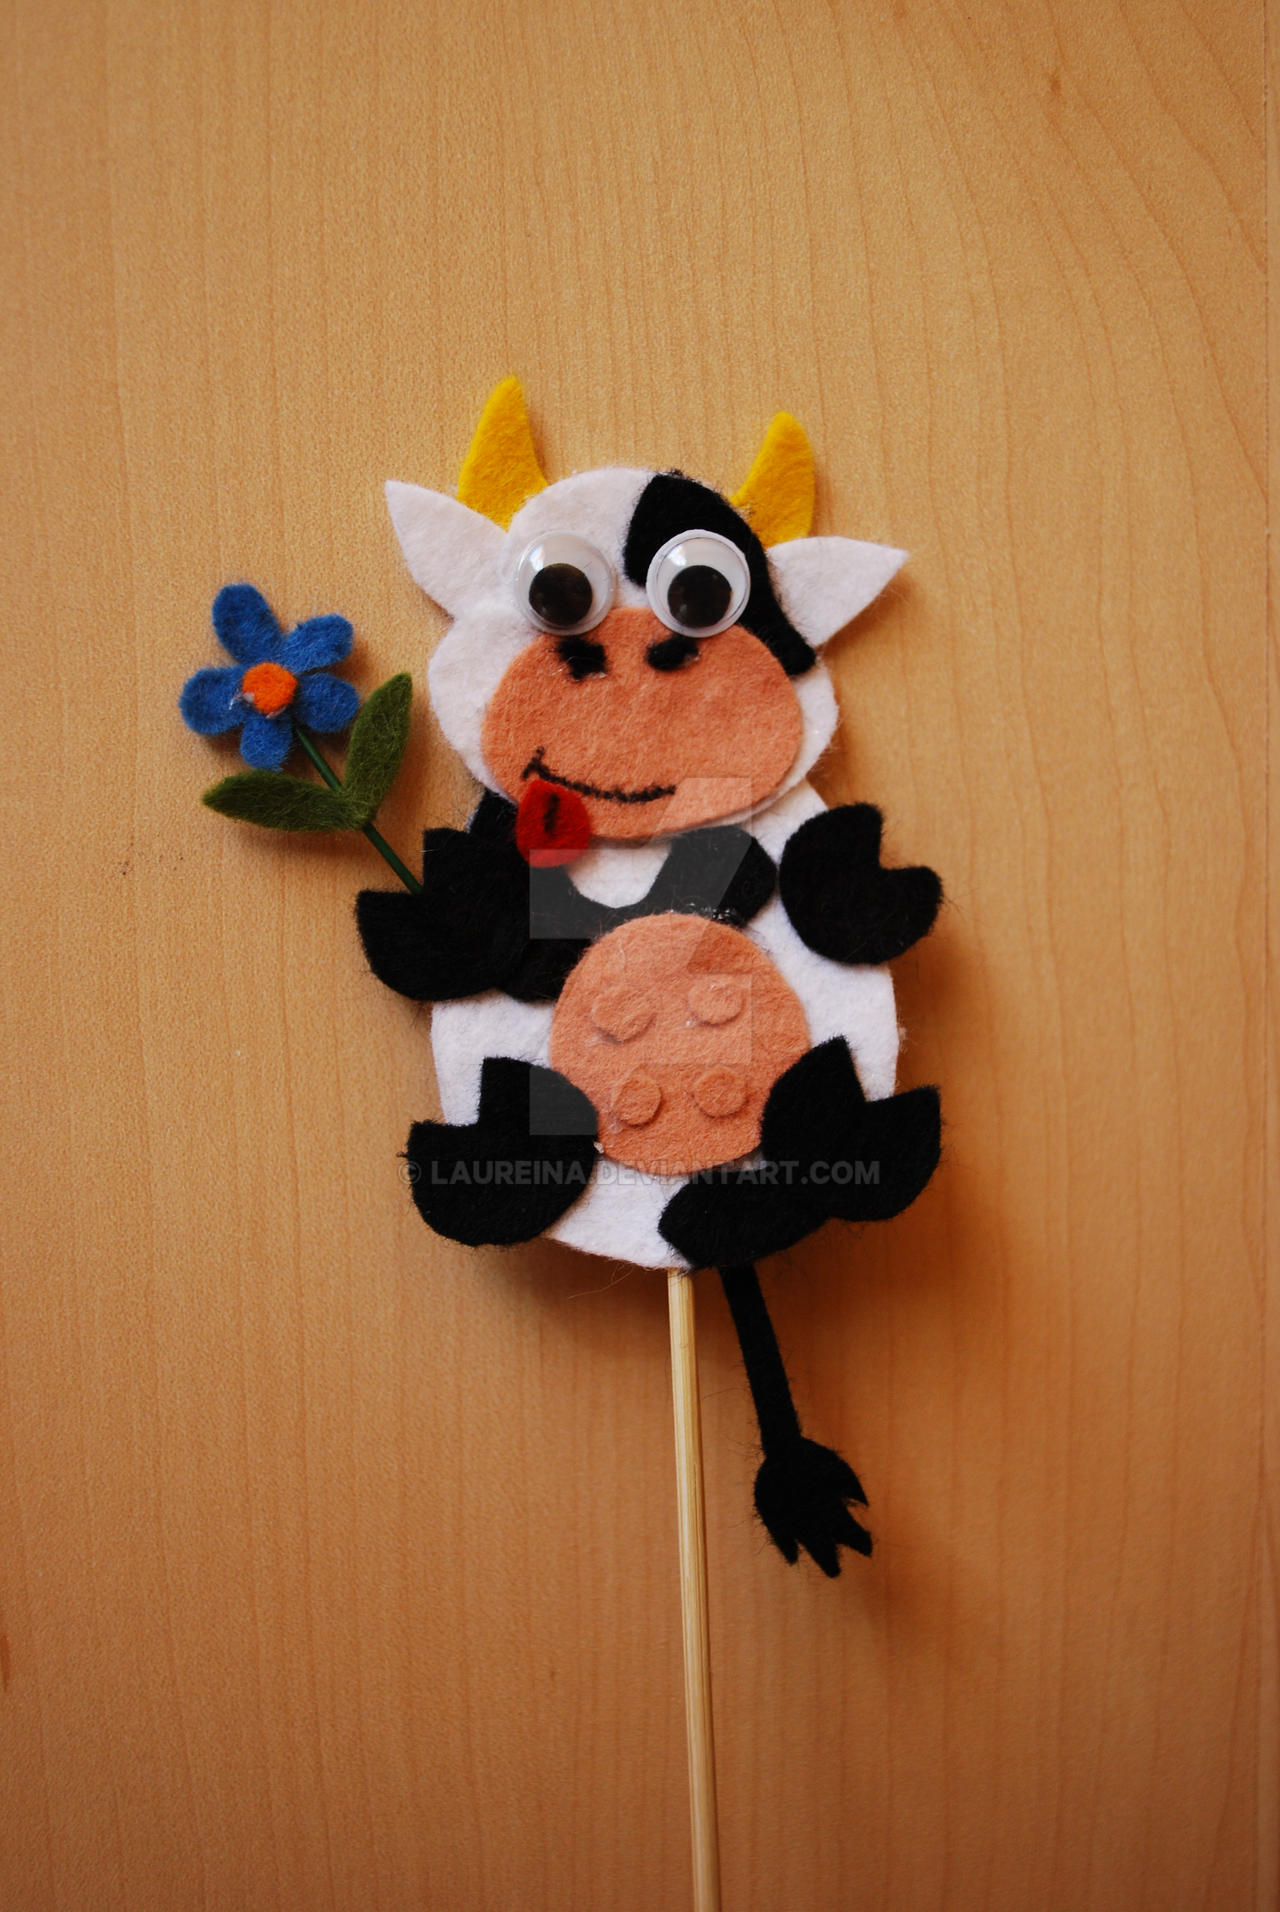 Cow by Laureina